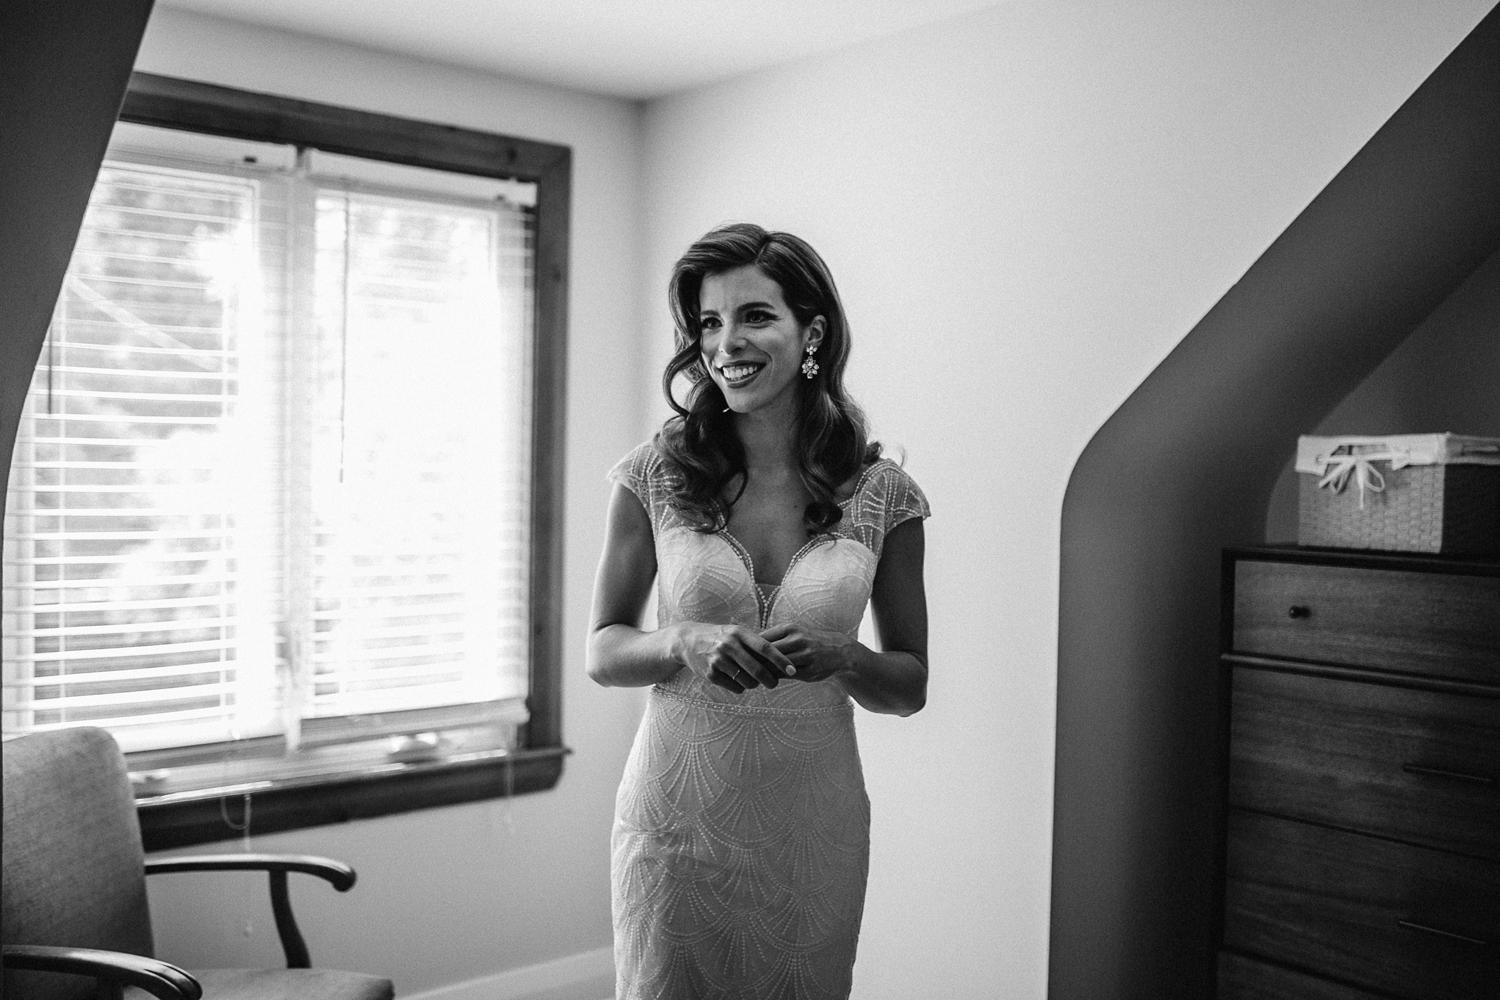 downtown ottawa wedding - kerry ford photography-017.jpg